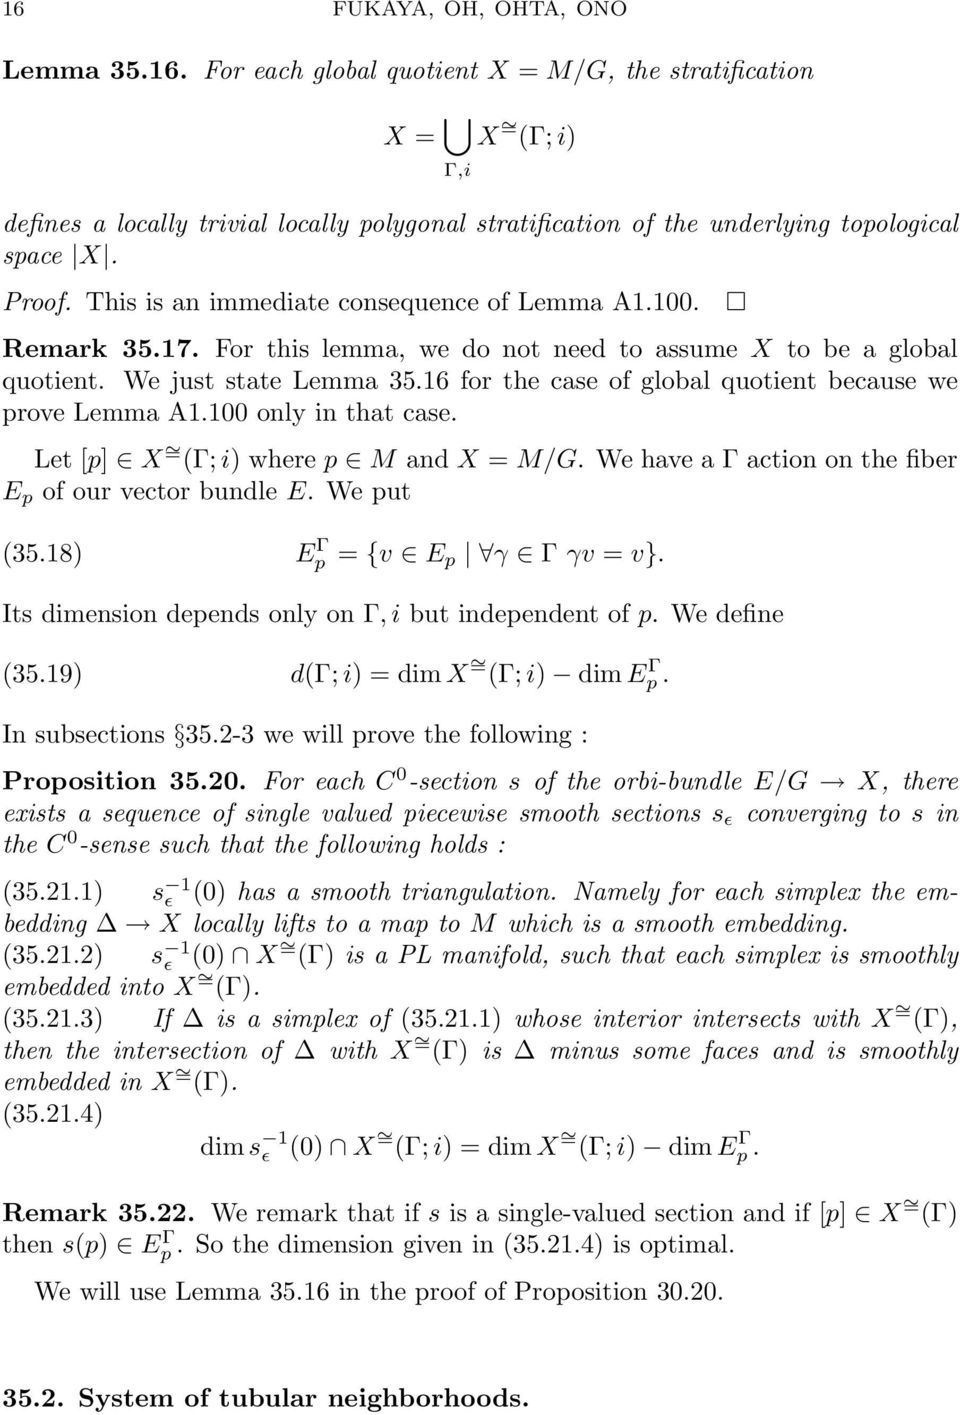 16 for the case of global quotient because we prove Lemma A1.100 only in that case. Let [p] X = (Γ; i) where p M and X = M/G. We have a Γ action on the fiber E p of our vector bundle E. We put (35.